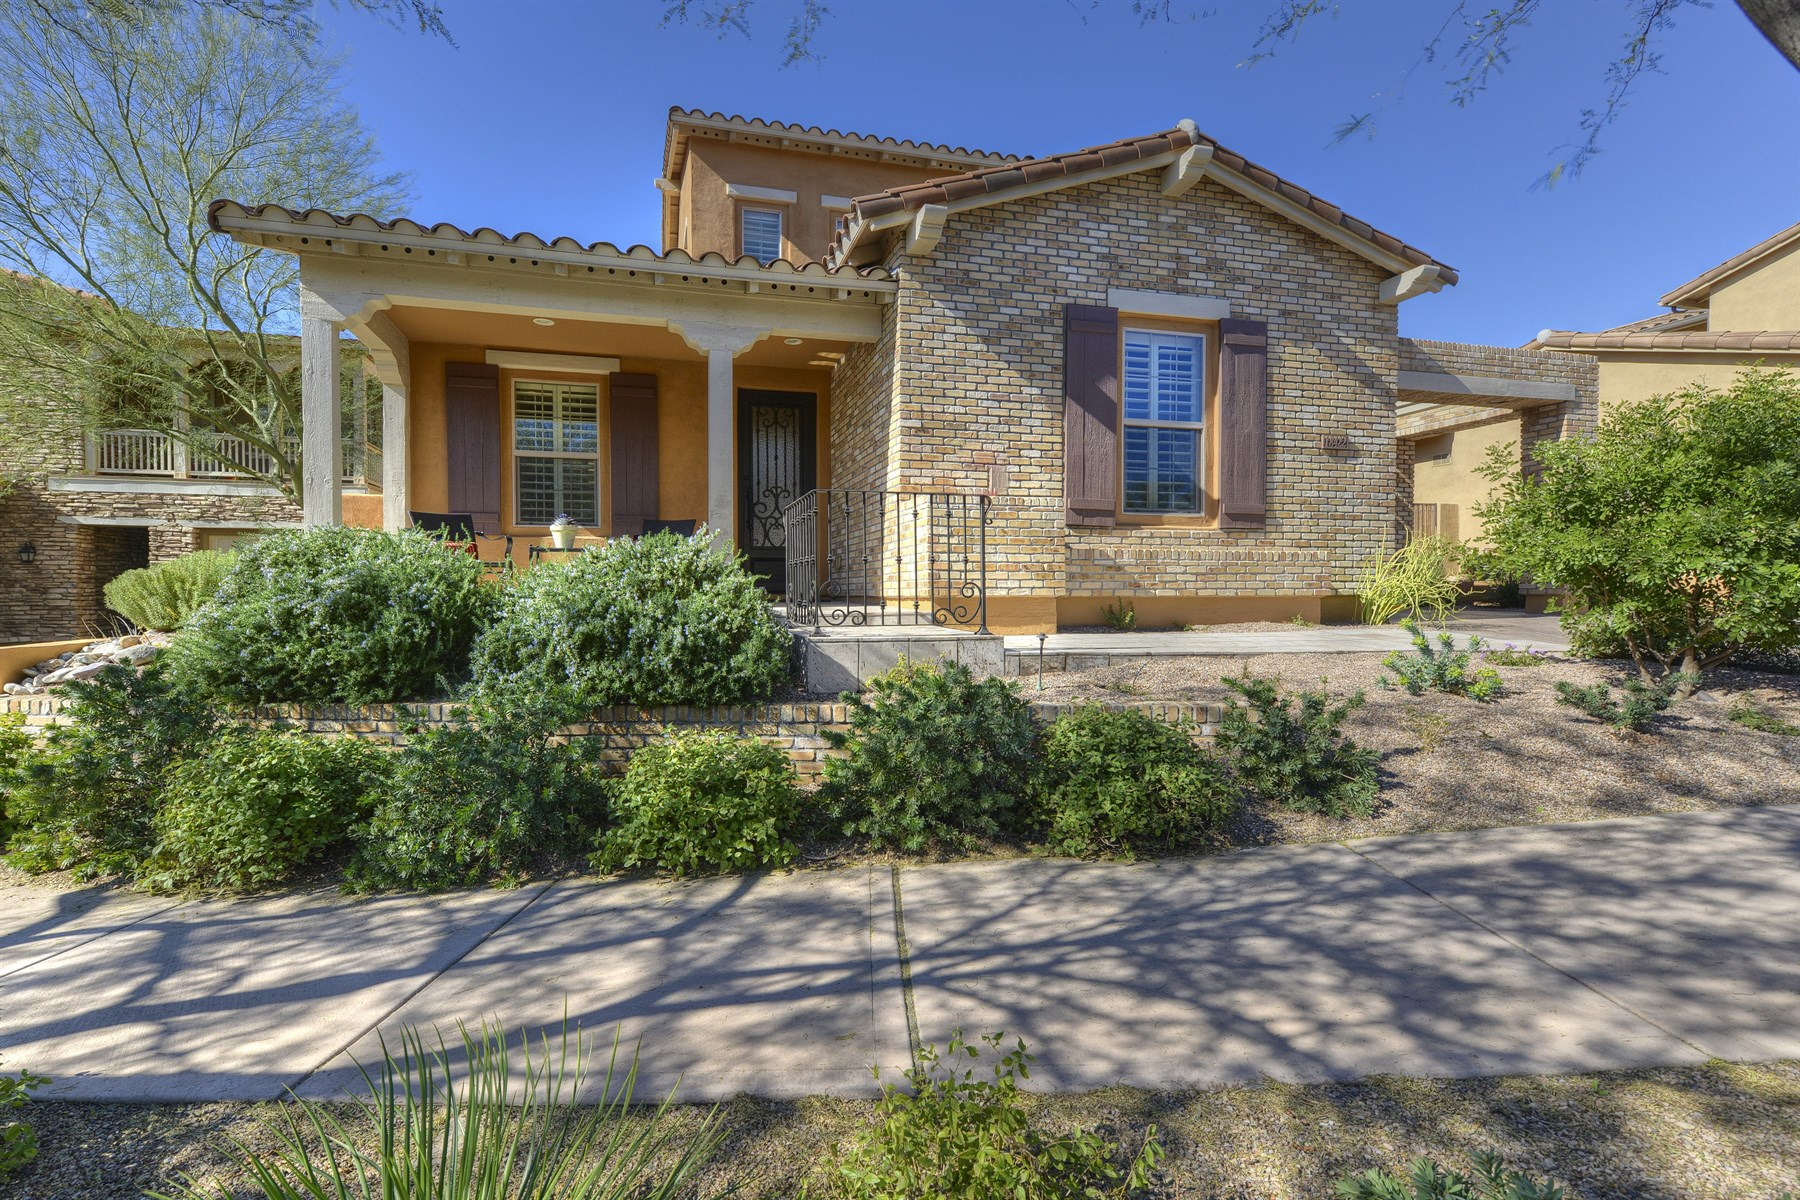 Maison unifamiliale pour l Vente à Highly upgraded home in the desirable Terraces community of DC Ranch 18422 N 94th Way Scottsdale, Arizona 85255 États-Unis